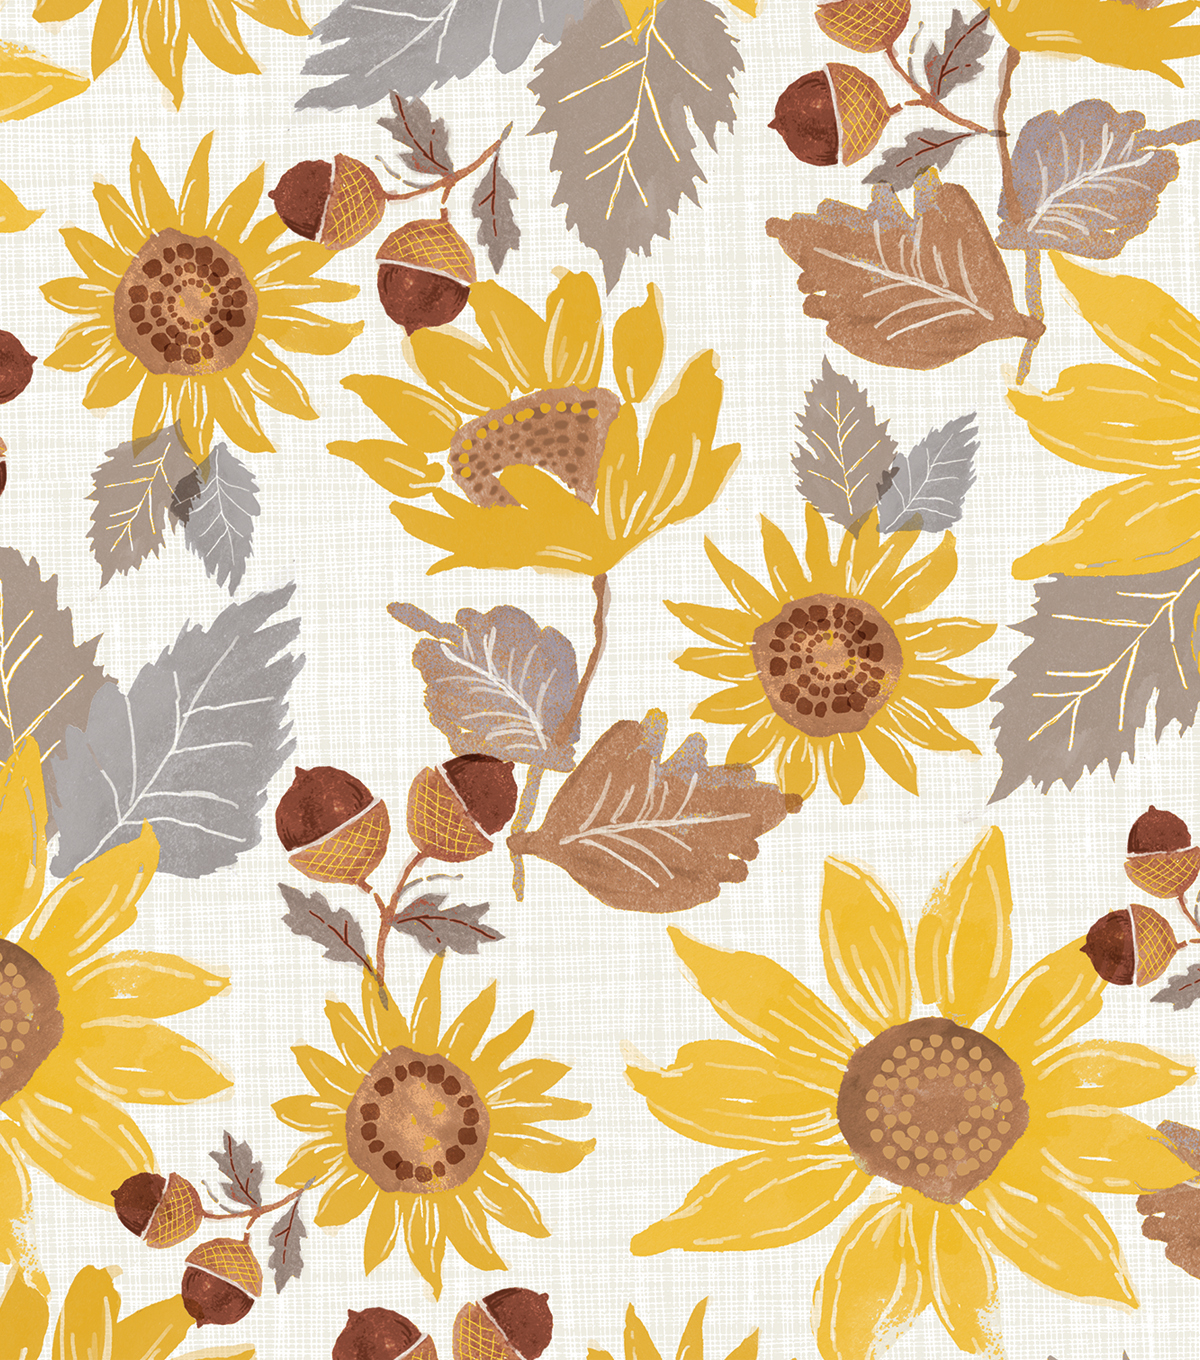 Simply Autumn Sunflowers 52\u0027\u0027X90\u0027\u0027 Peva Tablecloth